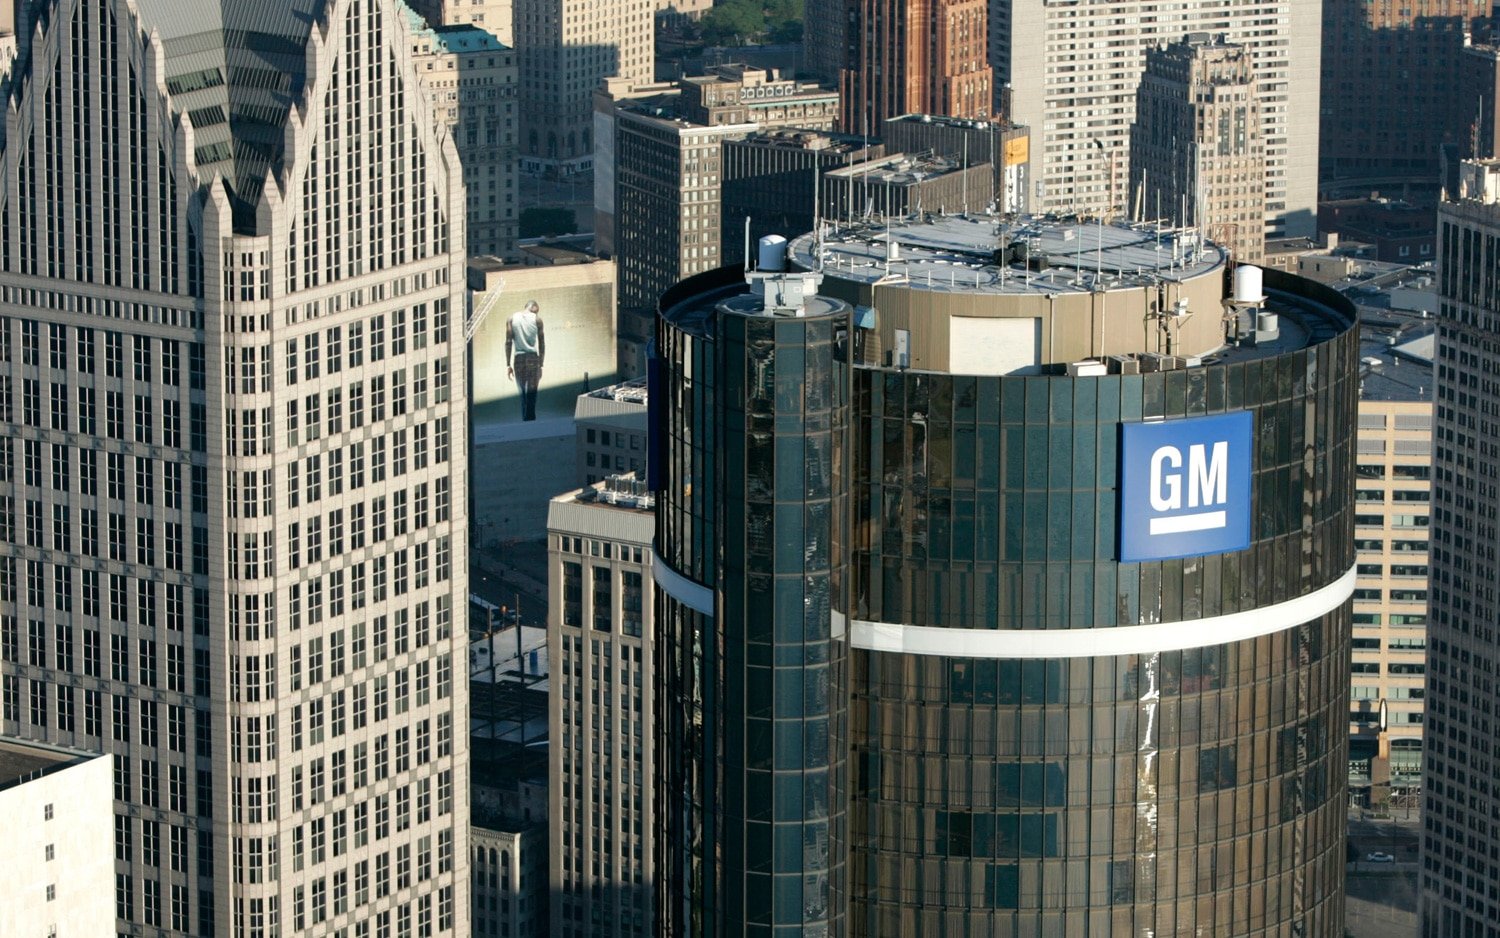 GM Renaissance Center 21